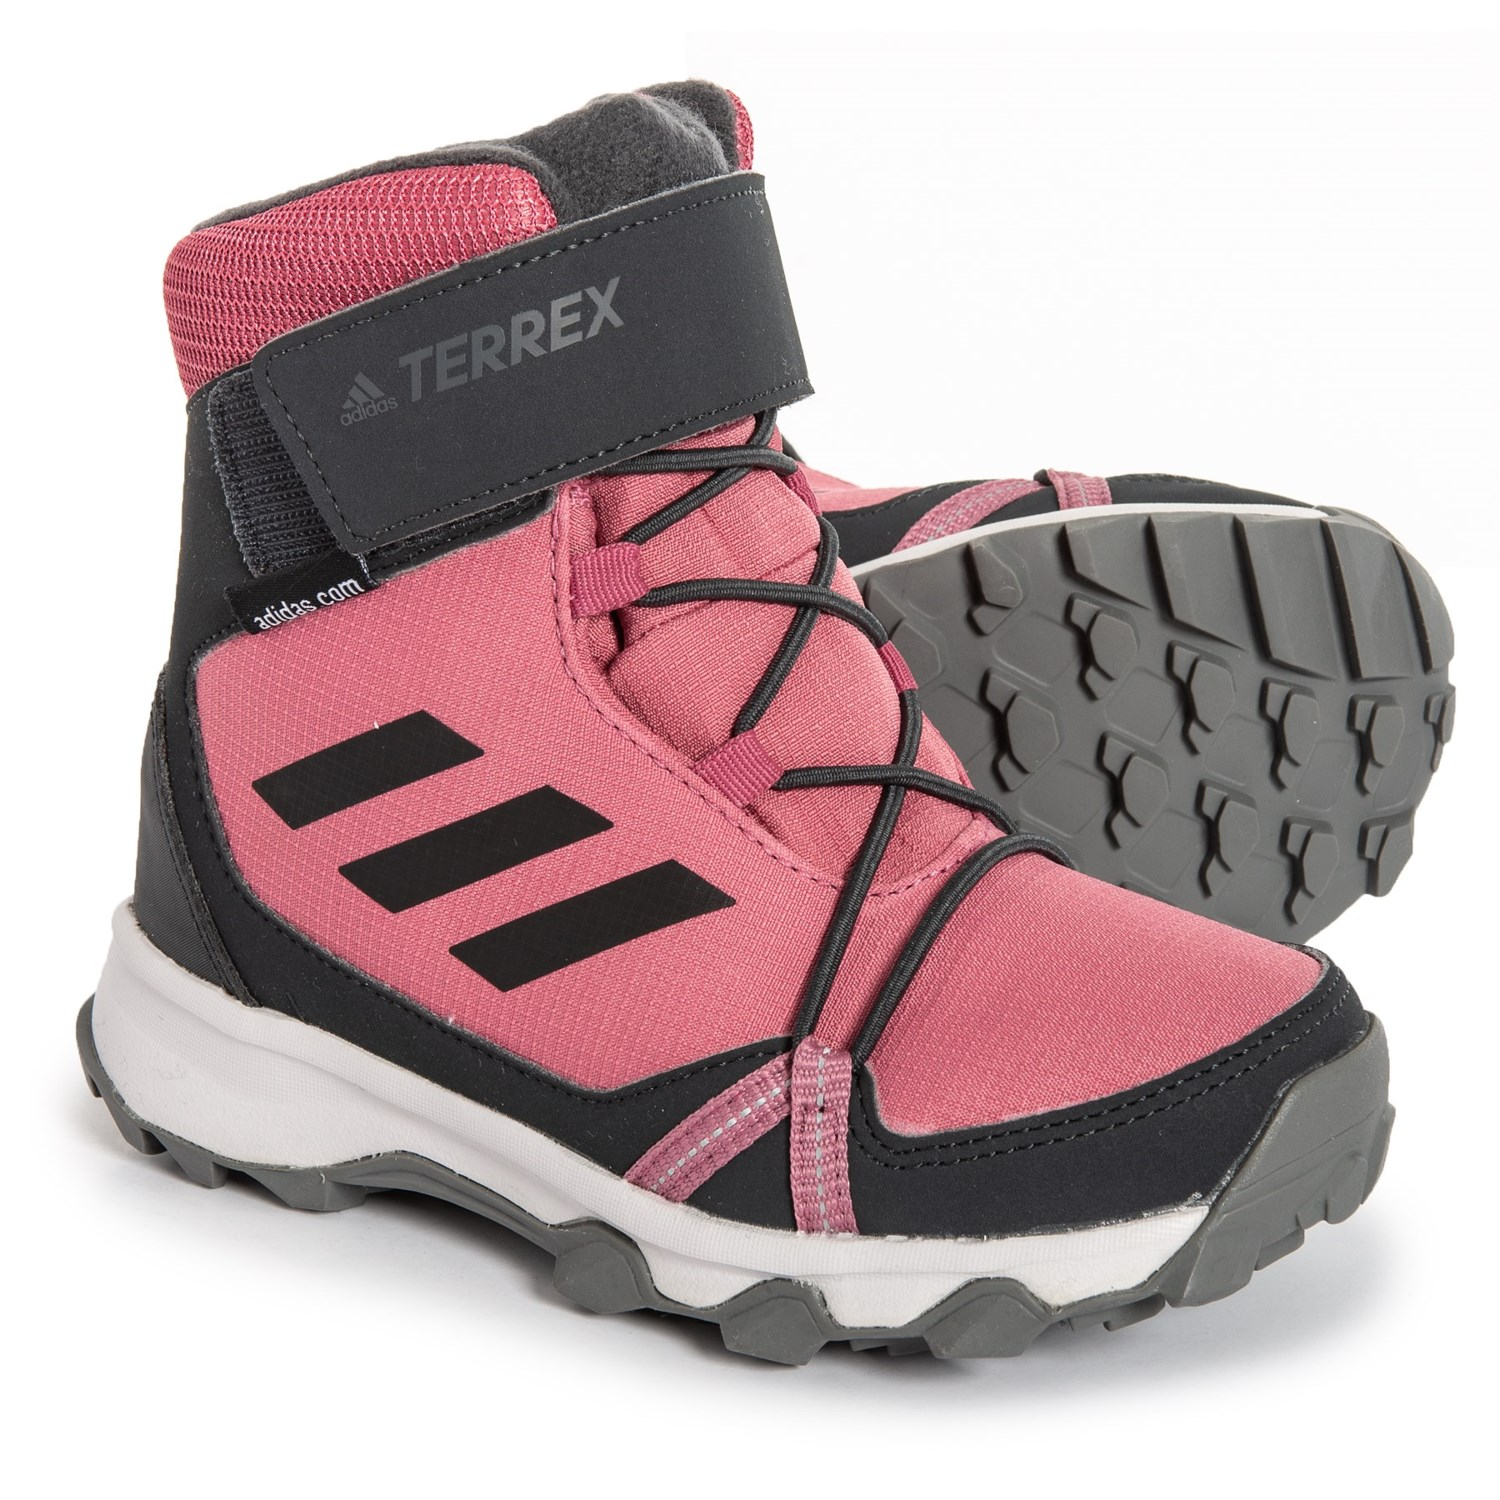 Adidas Outdoor Footwear | Adidas Trail Shoes & Boots | Blacks